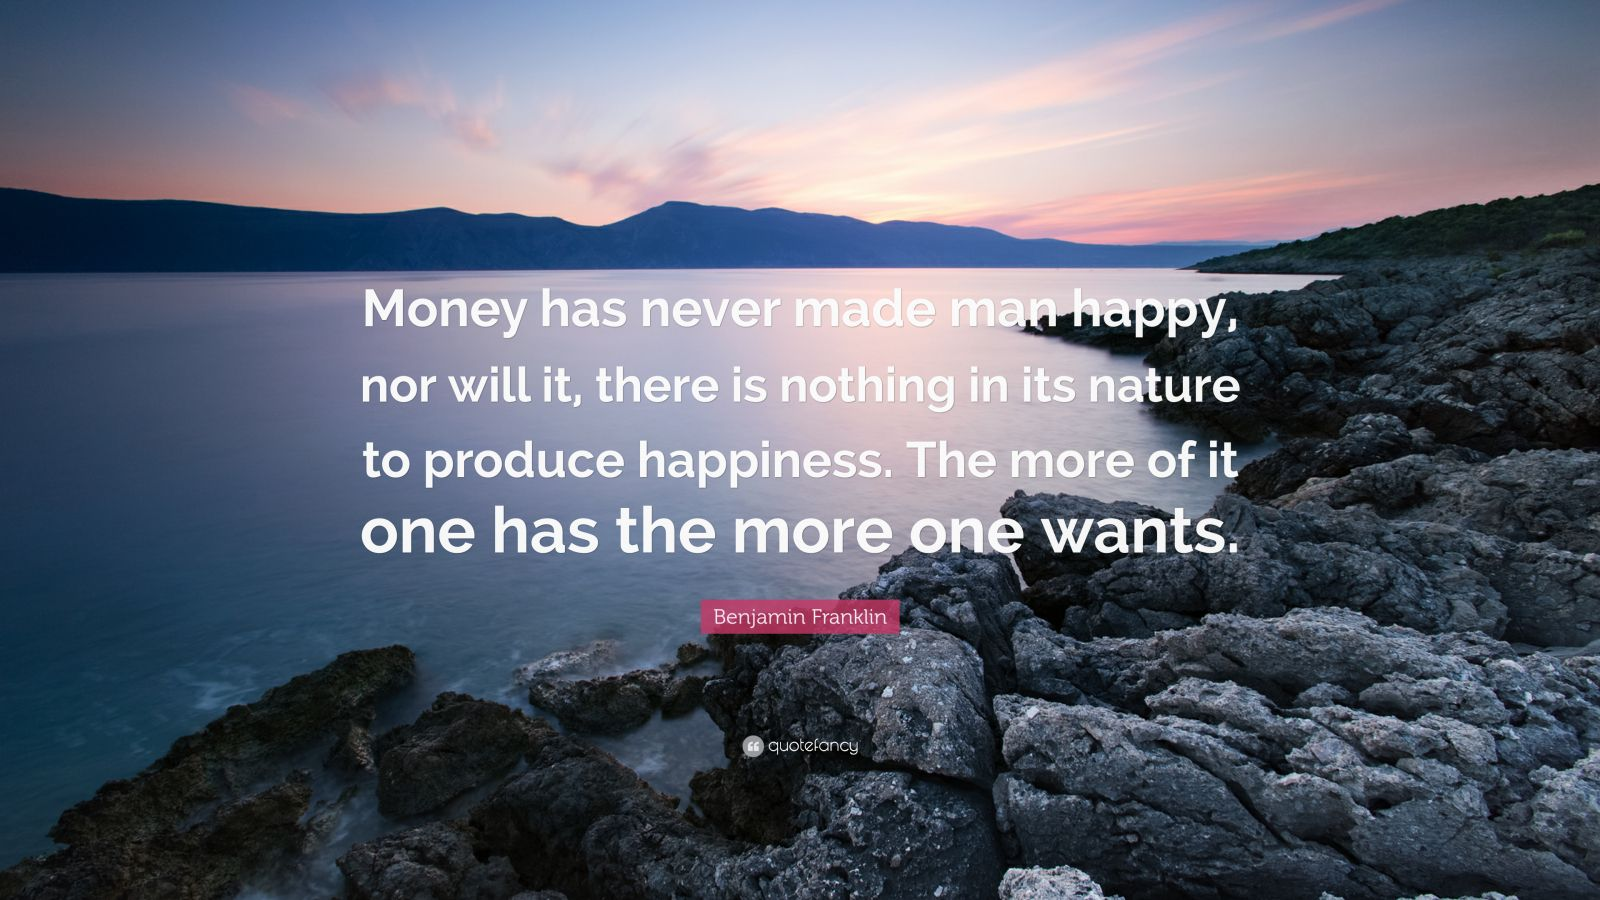 """Benjamin Franklin Quote: """"Money has never made man happy, nor will it, there is nothing in its nature to produce happiness. The more of it one has the more one wants."""""""